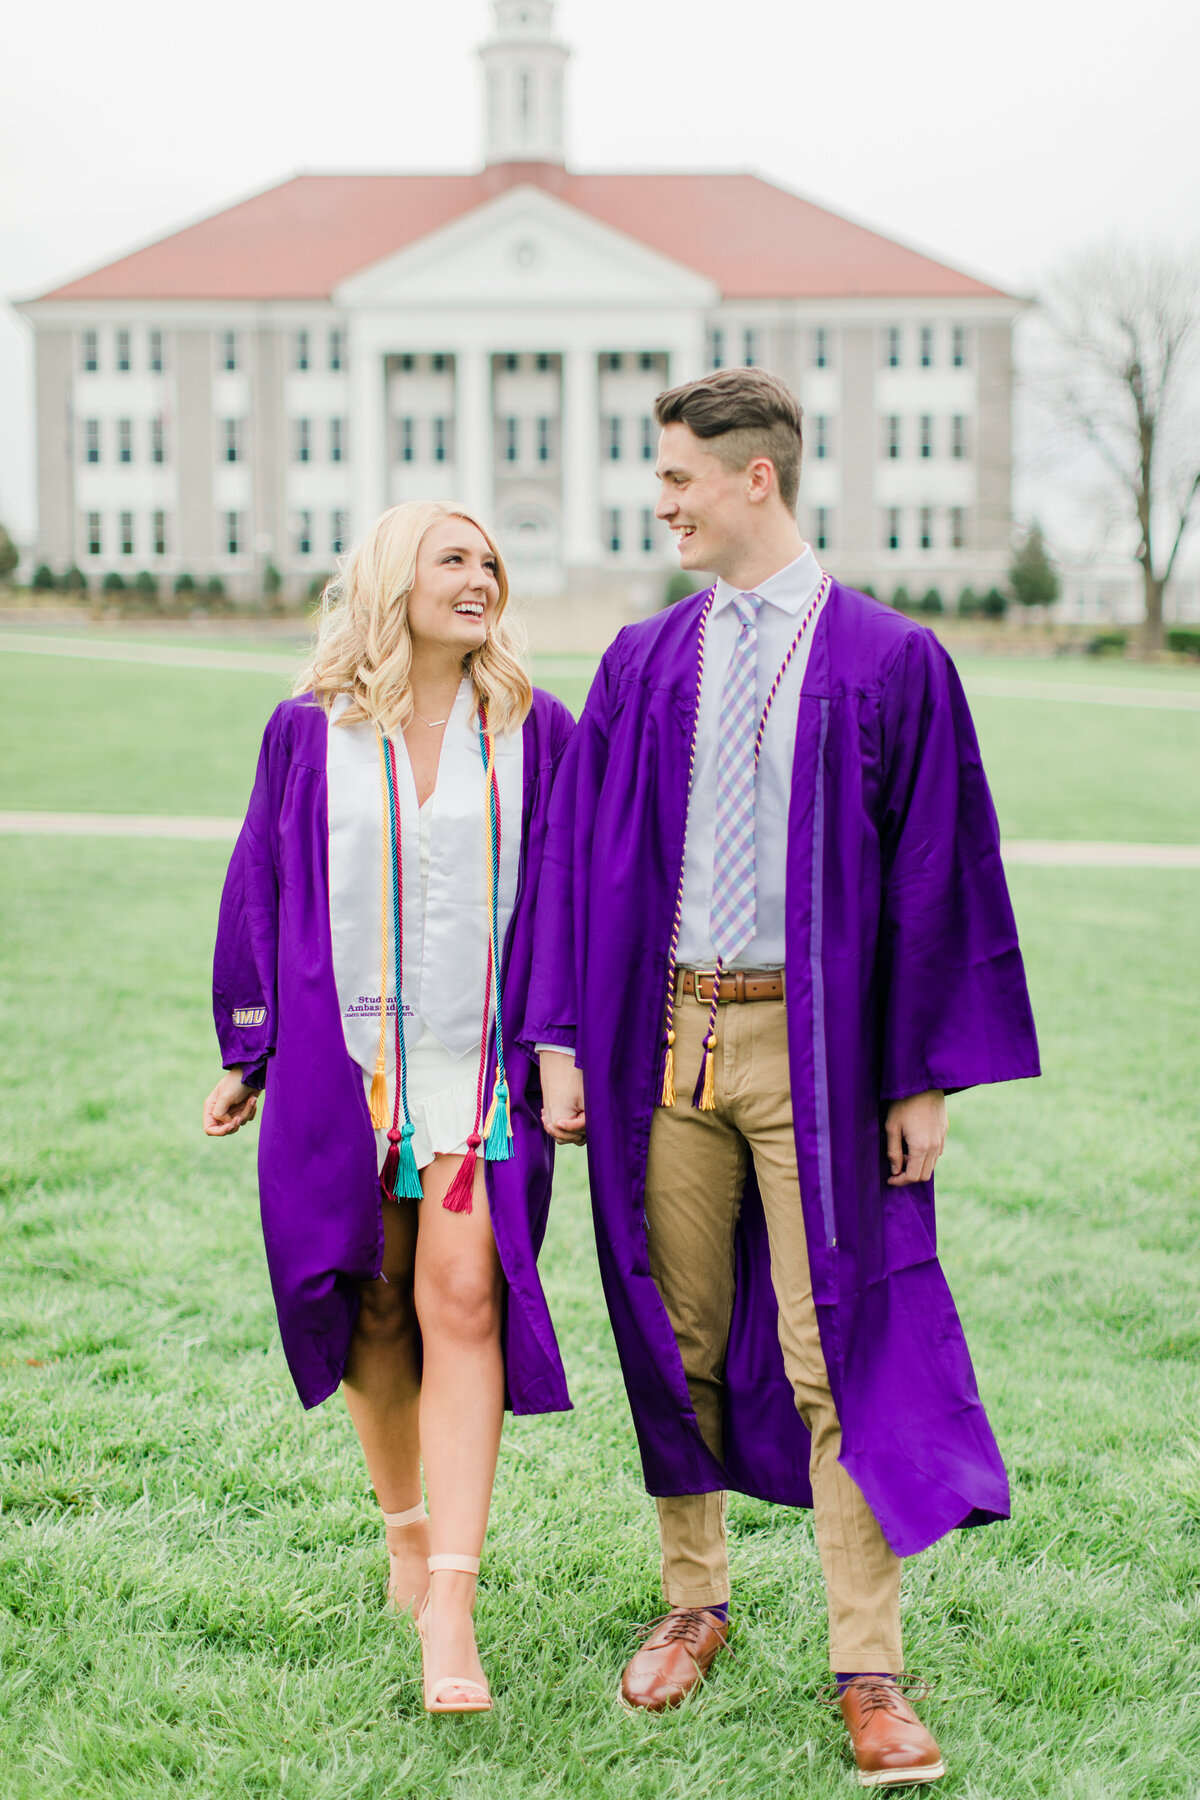 Nicki_JMU_Senior_2020_Angelika_Johns_Photography-1118